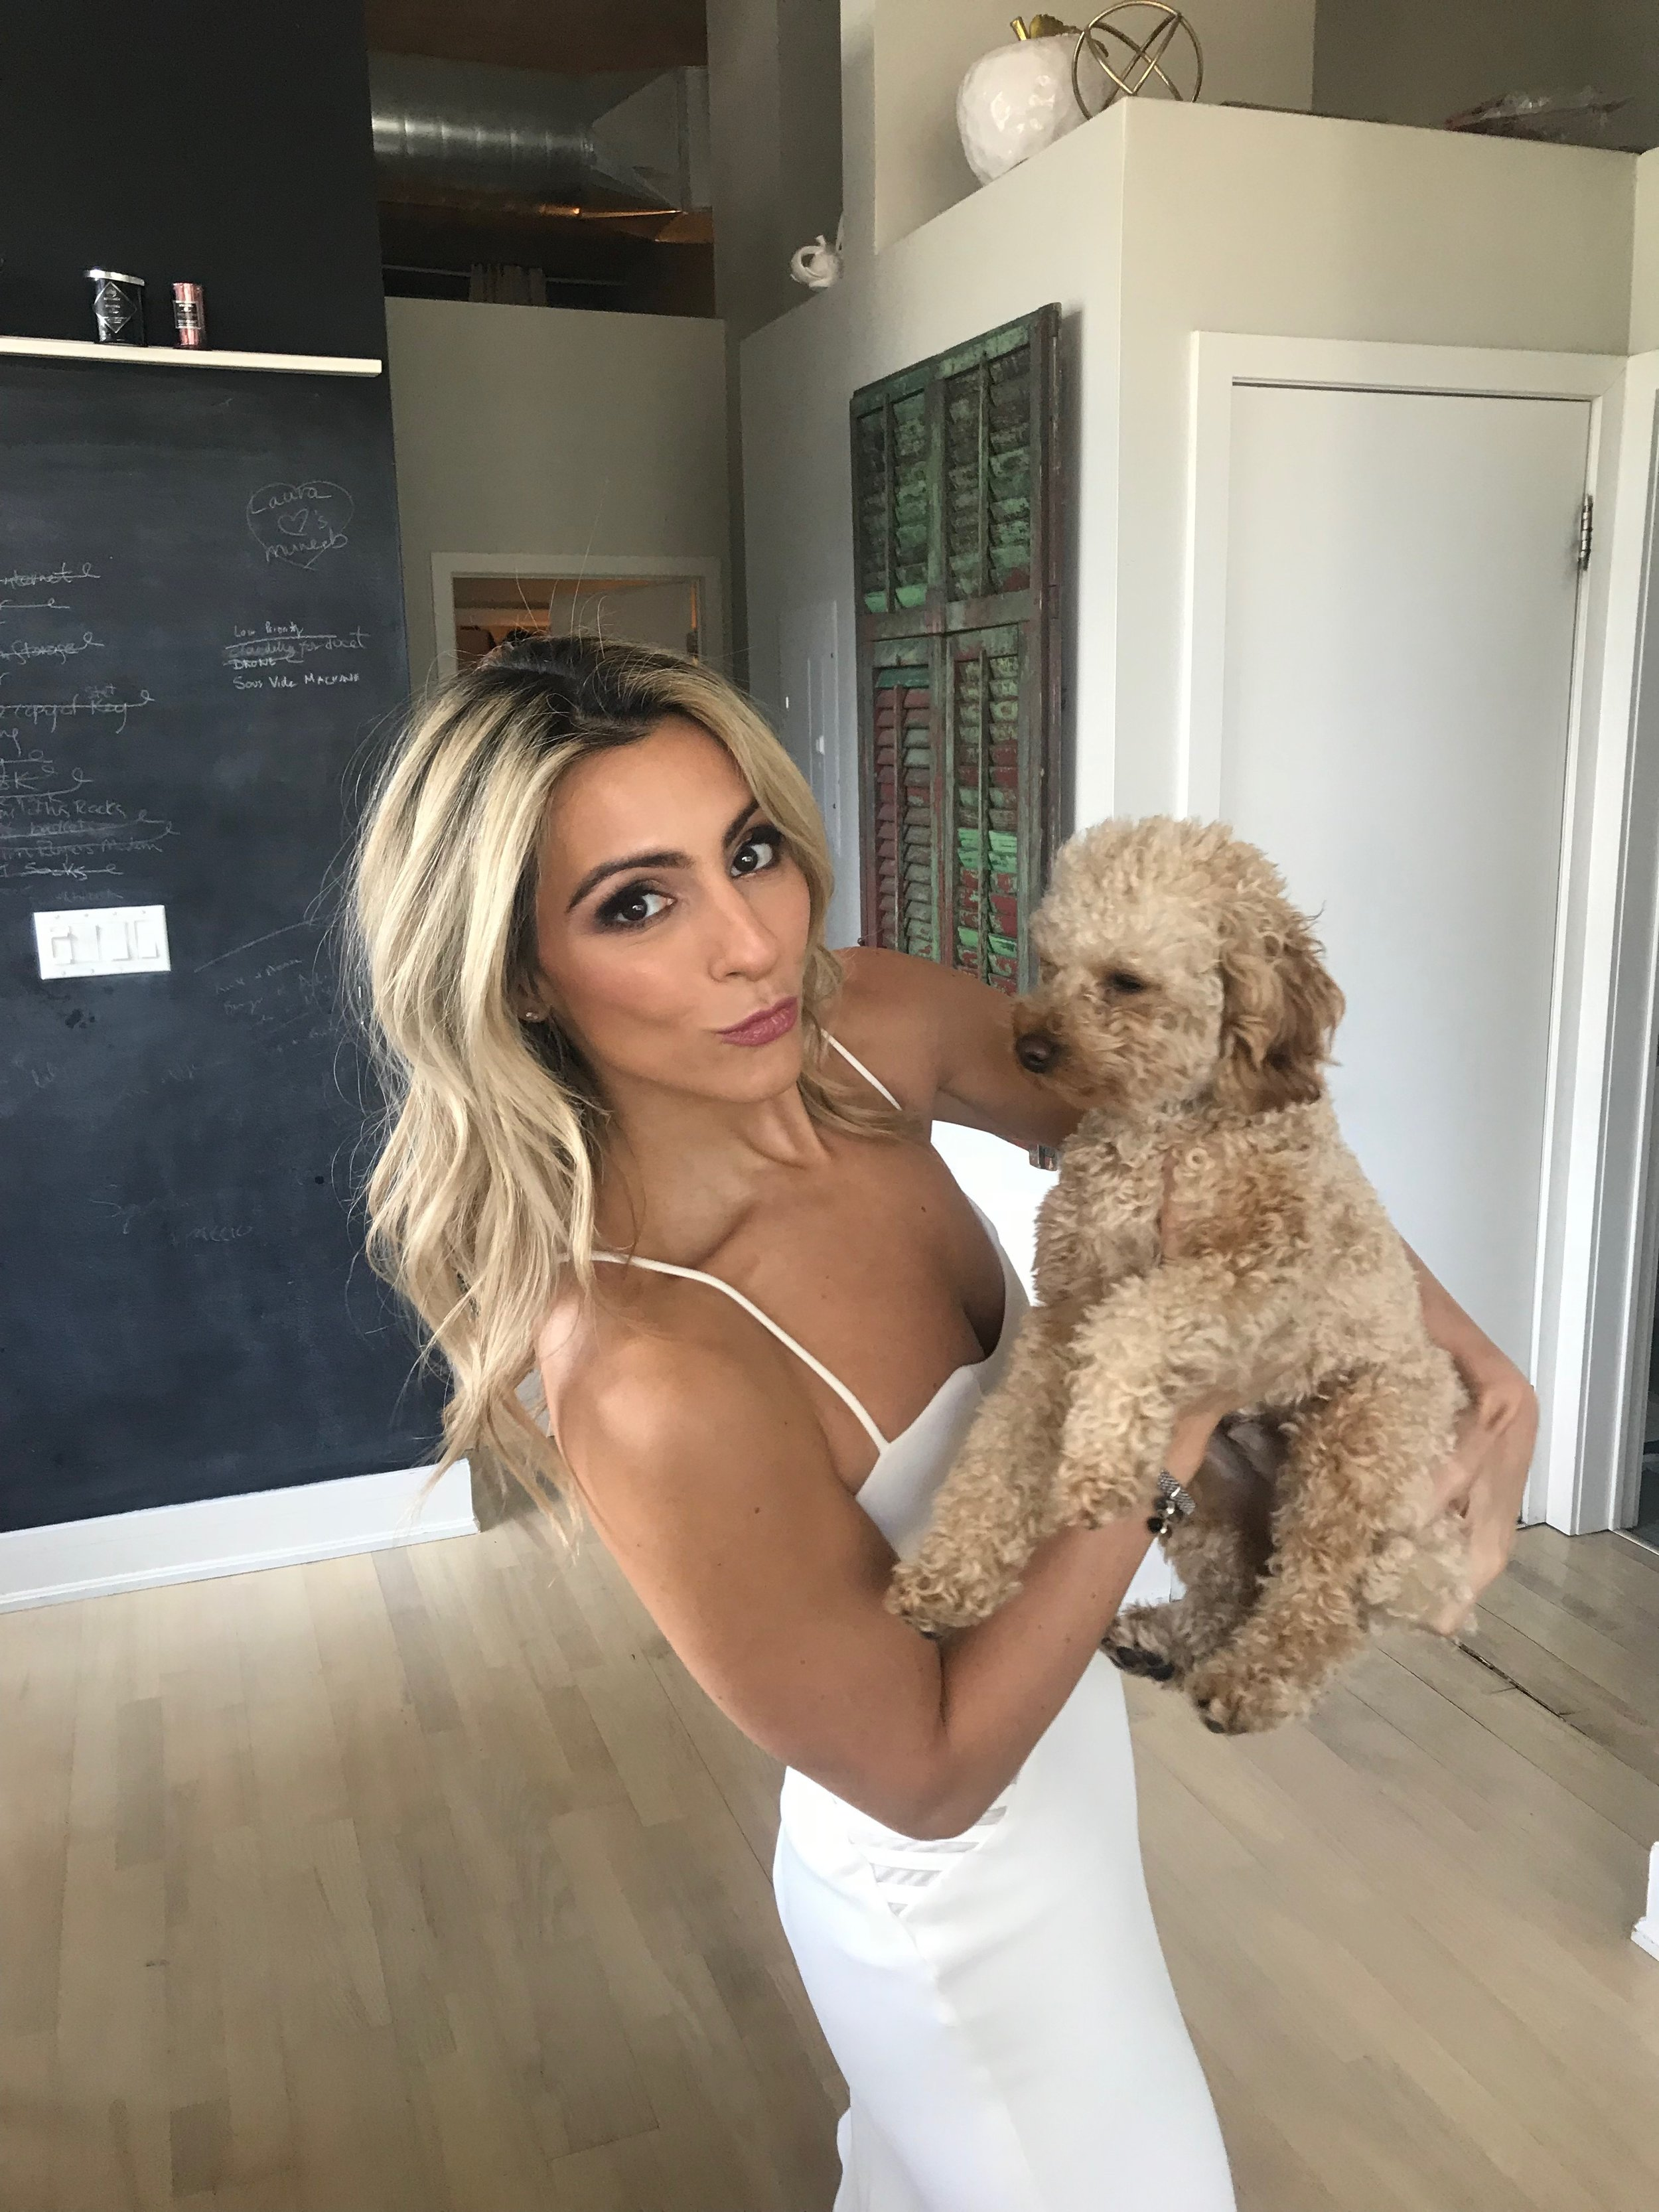 Bride to be with her dog.Destination Wedding Planner Andrea Eppolito is based in Las Vegas.